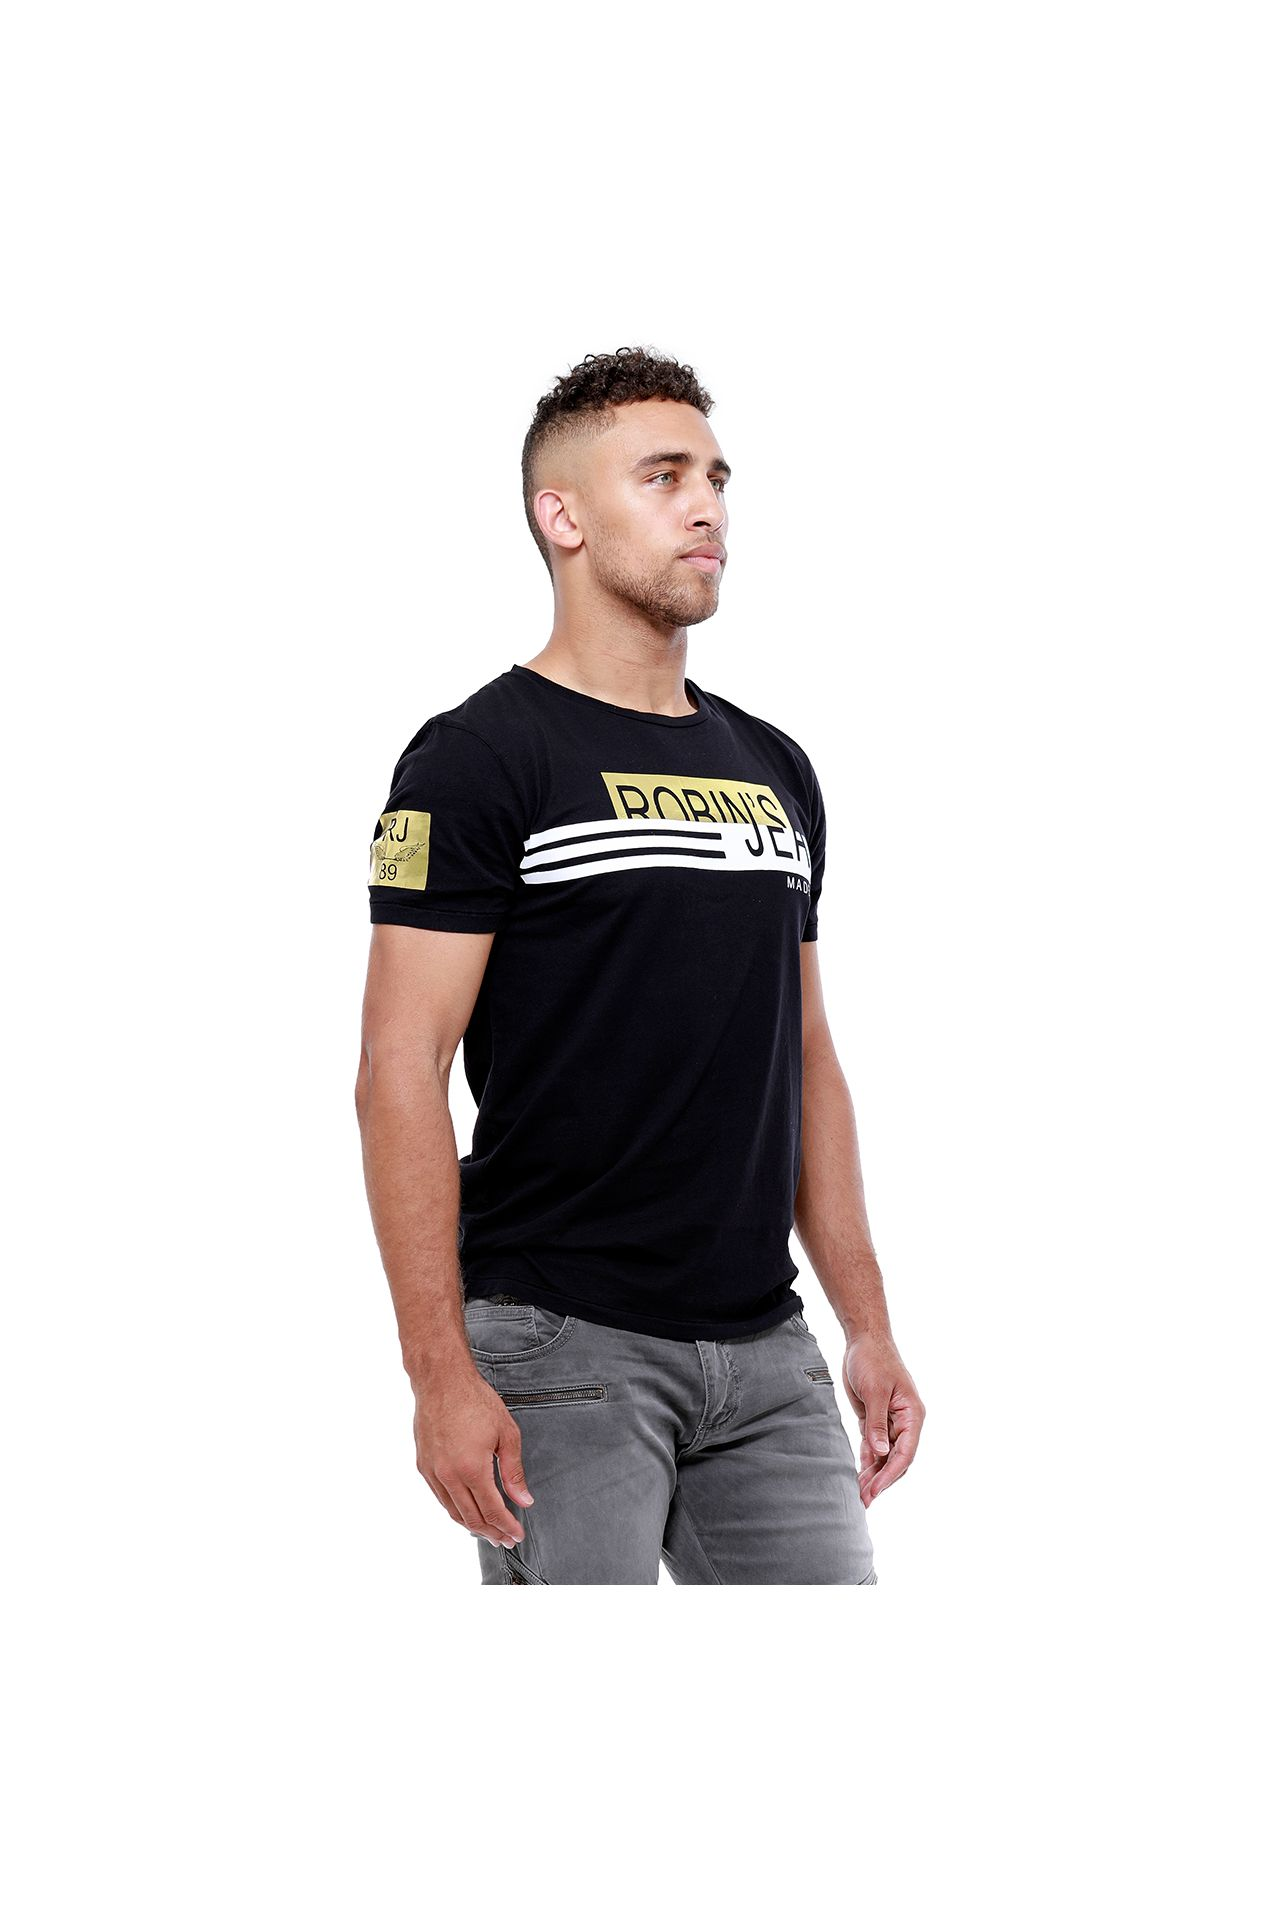 SPORT DESIGN TEE IN BLACK